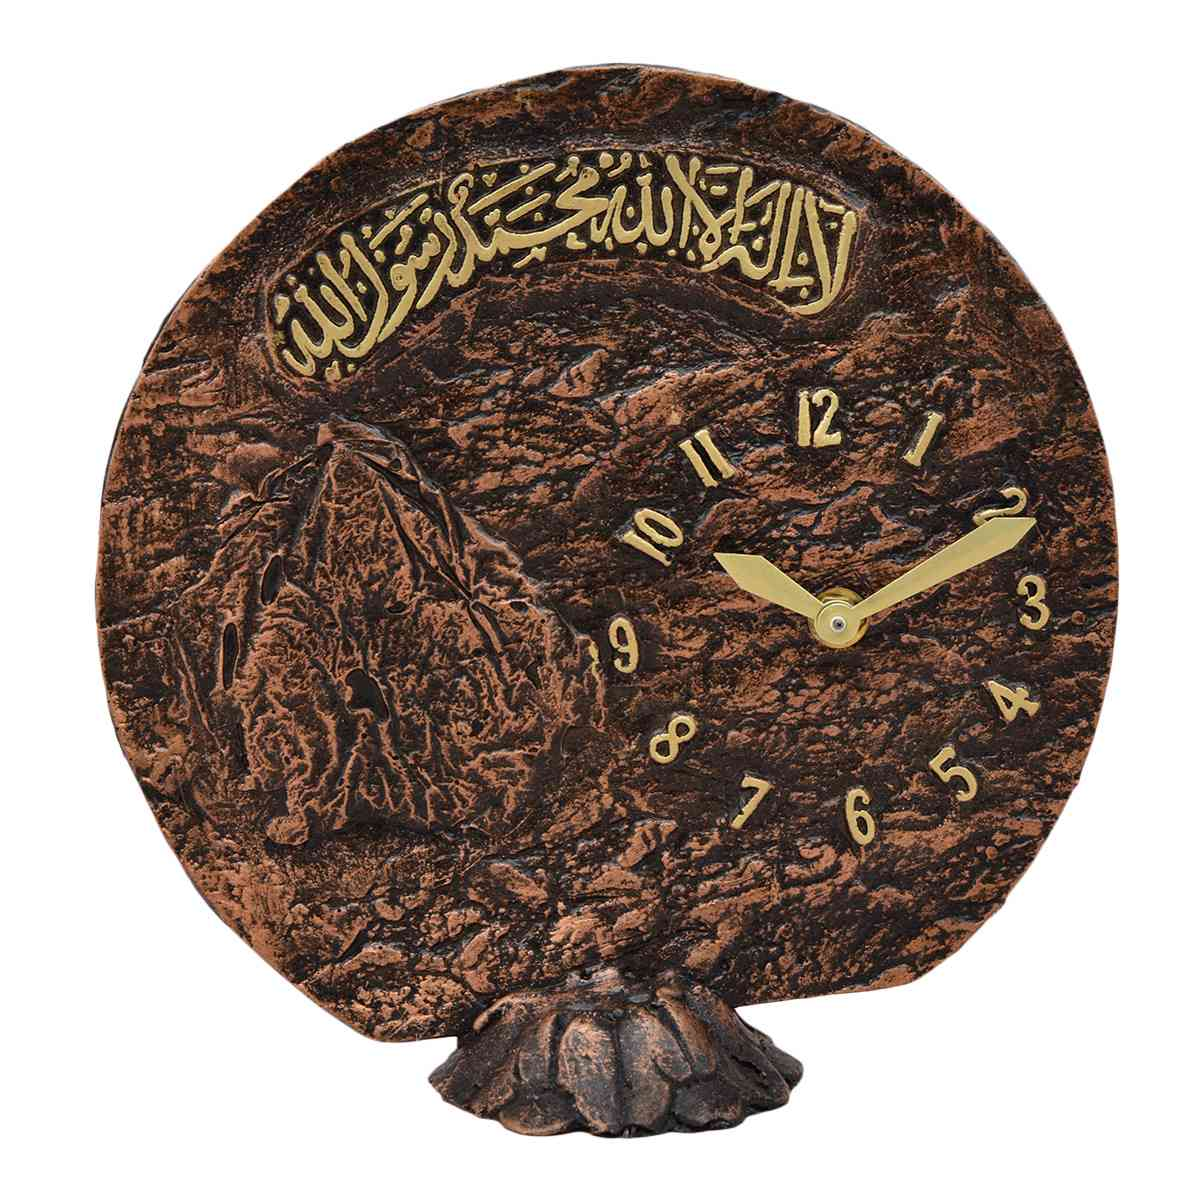 Engraved Calligraphy Table Clock for Home Decoration (Width 9 Inch x Height 9 Inch)